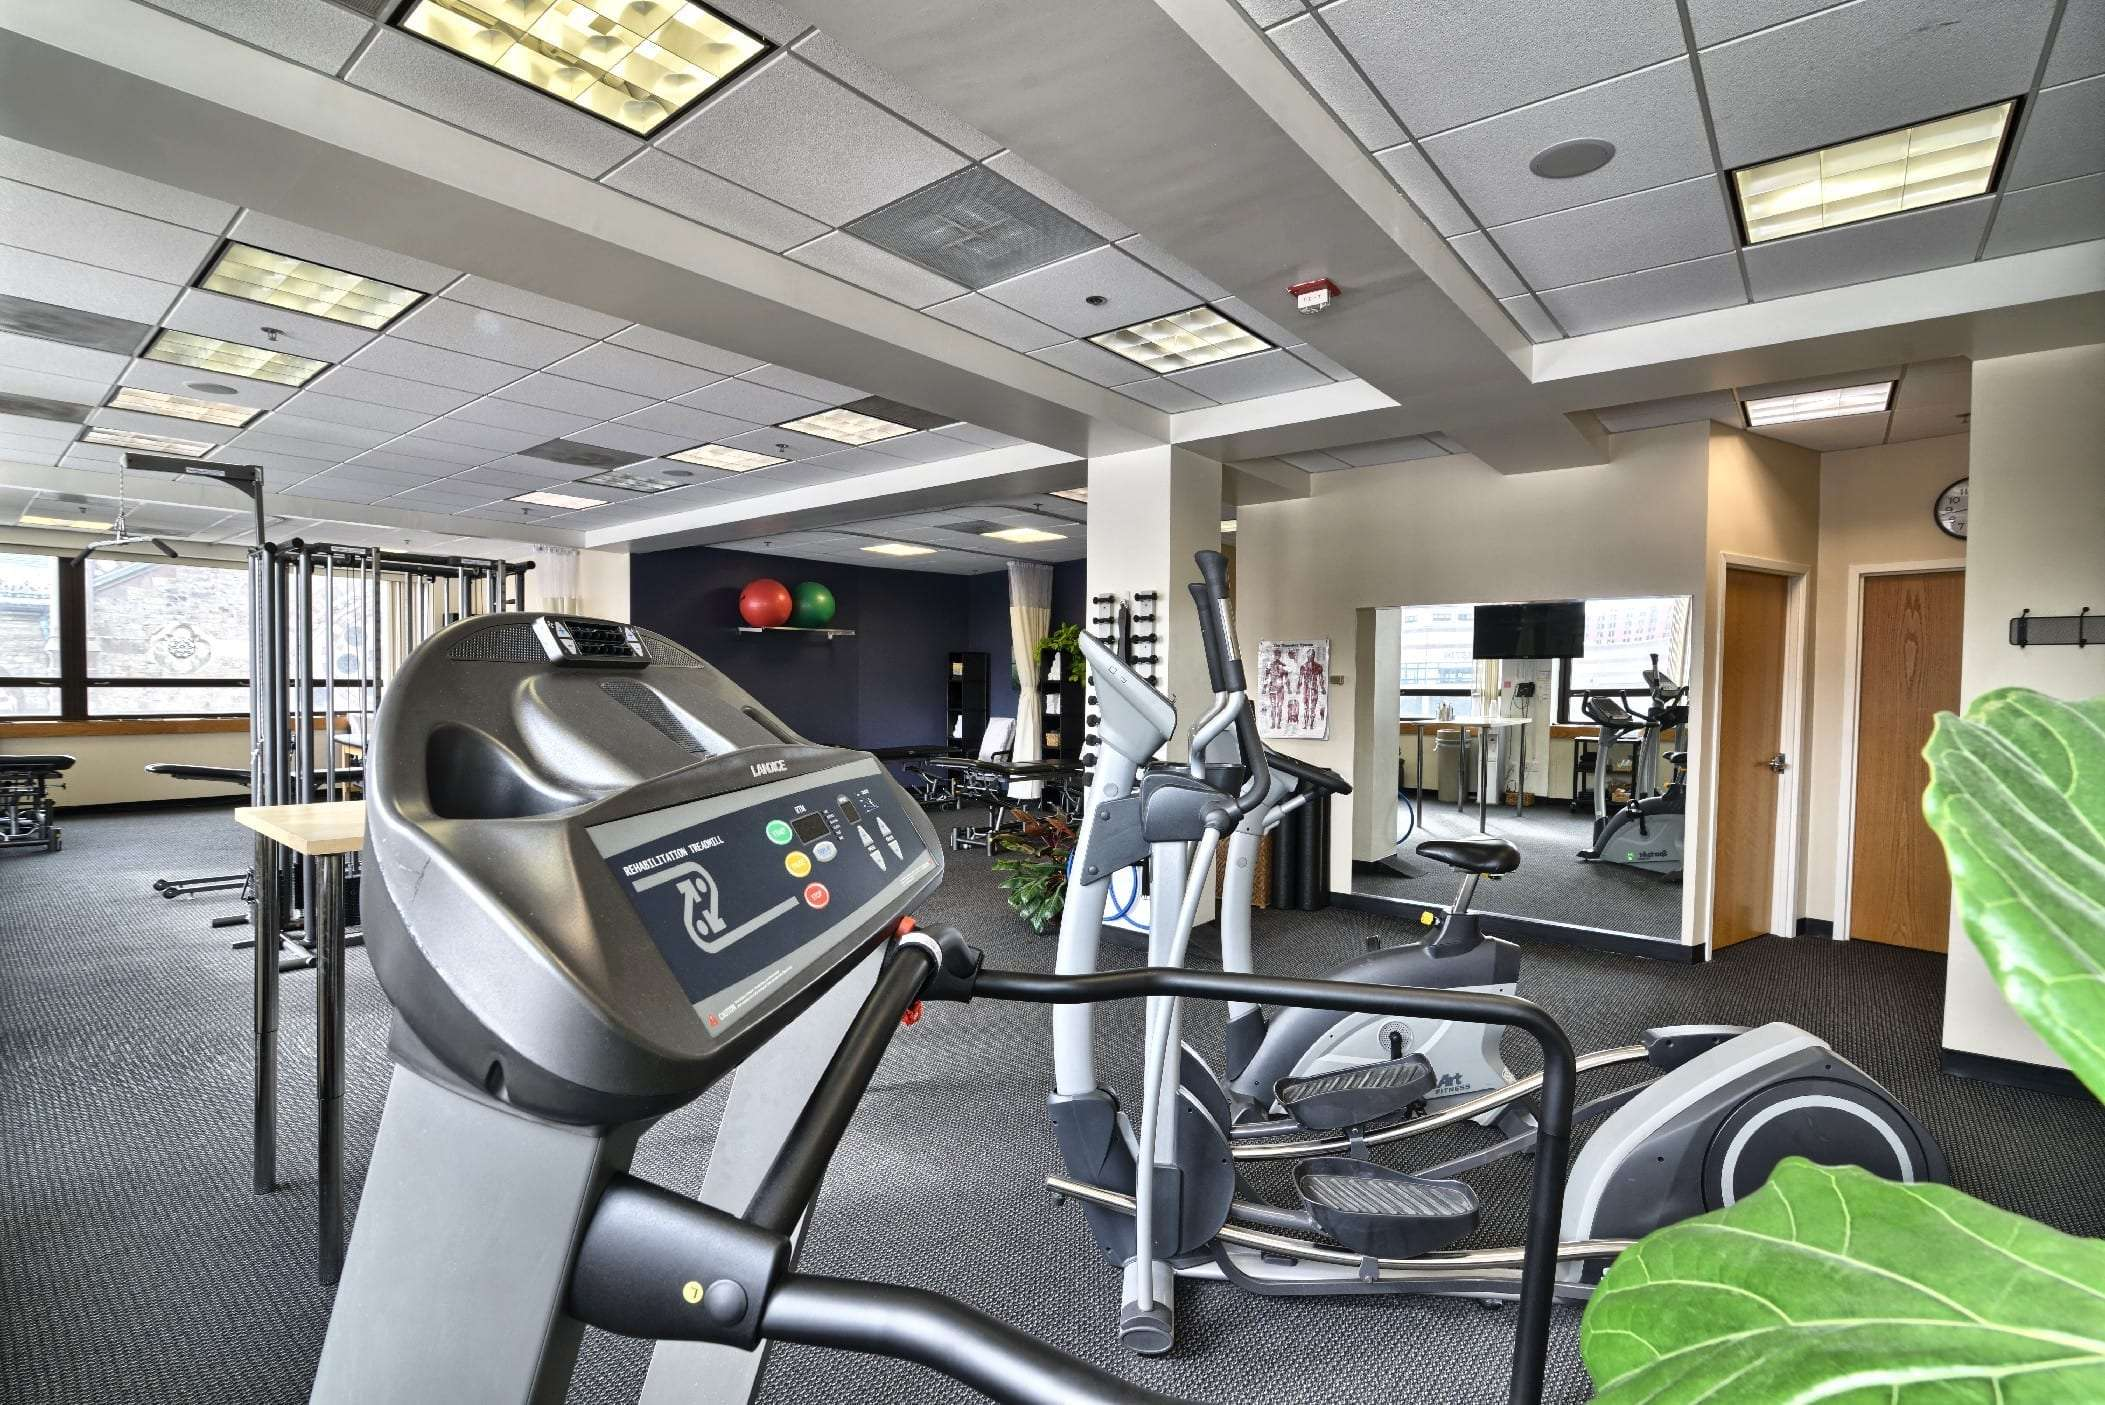 Here is a photo of the inside of our physical therapy clinic in Boston, Massachusetts.